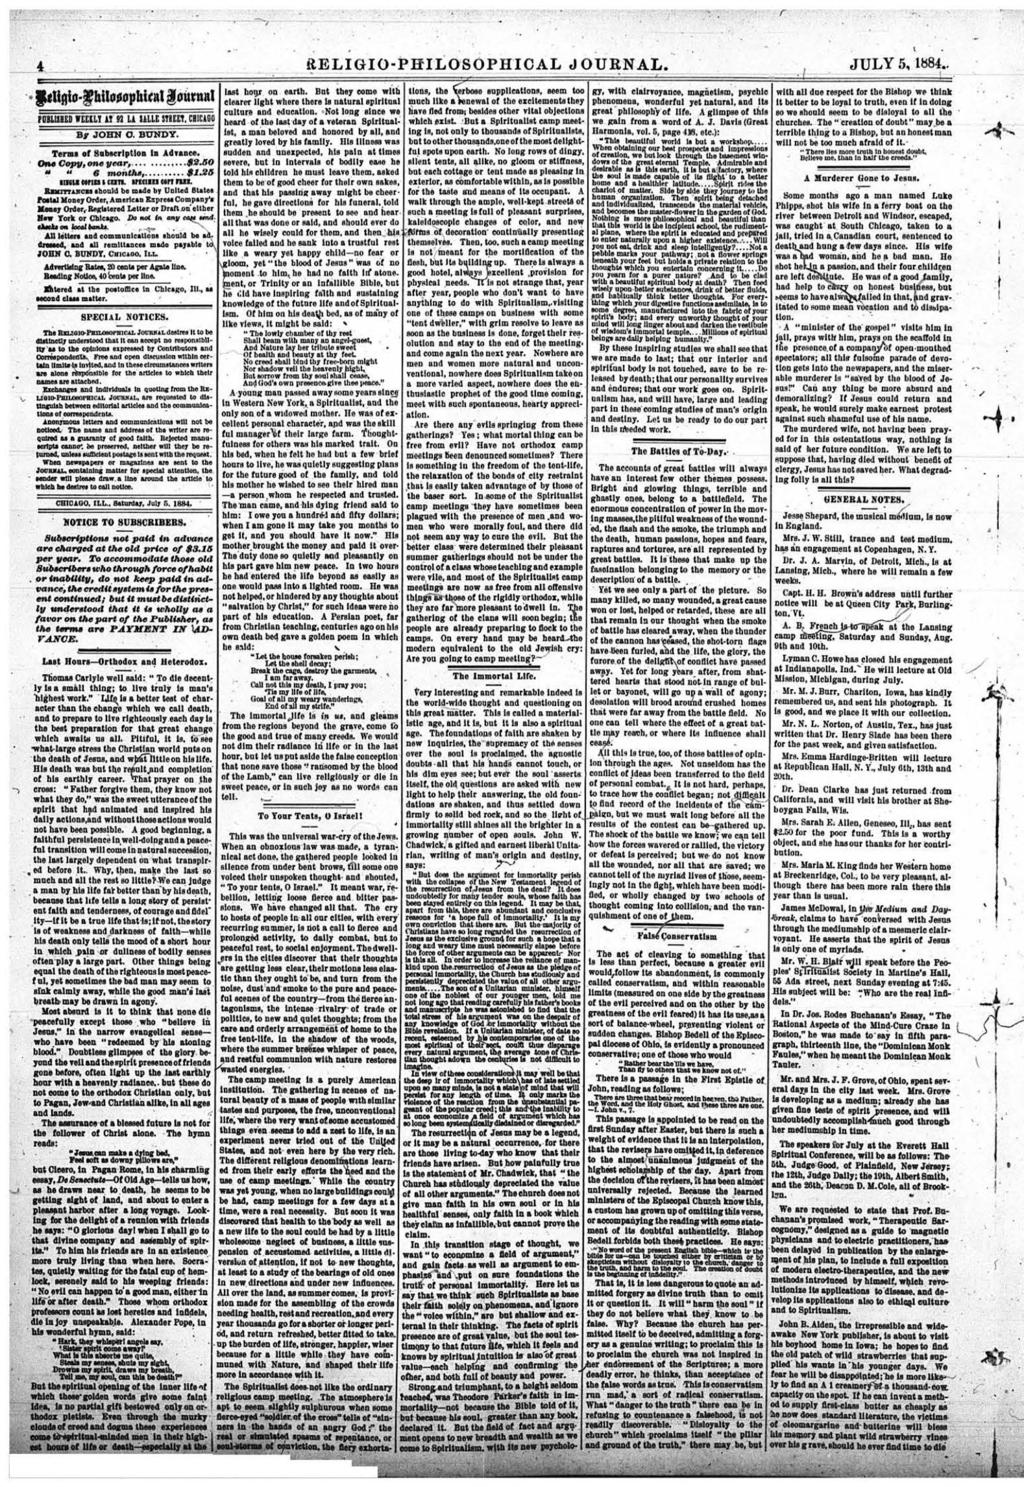 r IELIGIO-PHILOSOPHICAL JOURNAL. JULY 5,1884., -L- * I M i f li ö - f hilouaphinü onxm \ robluied WLEILT IT 91 Li SALLE STBEET. C3ICÍ0Ü By JOHN O. BUNDY- Terms of Subscription in Advance.